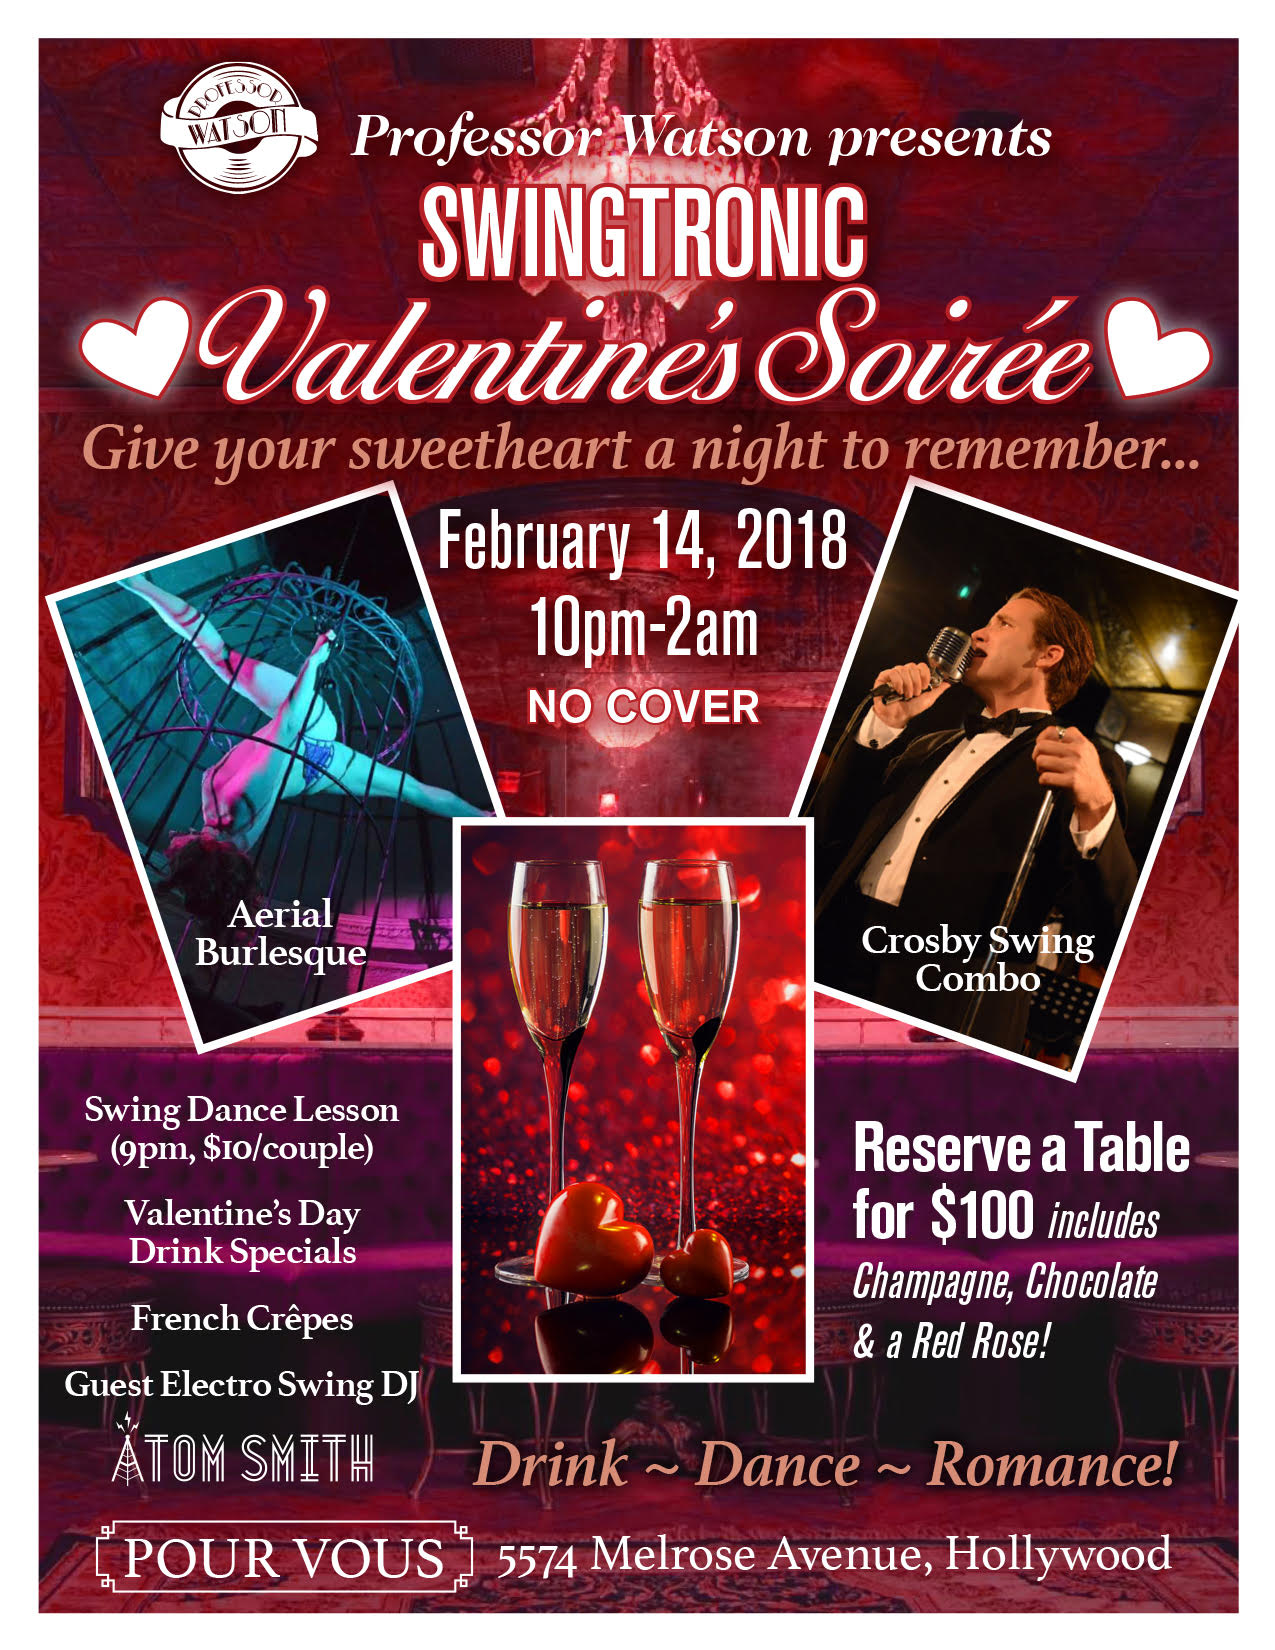 Valentines Soiree Flyer